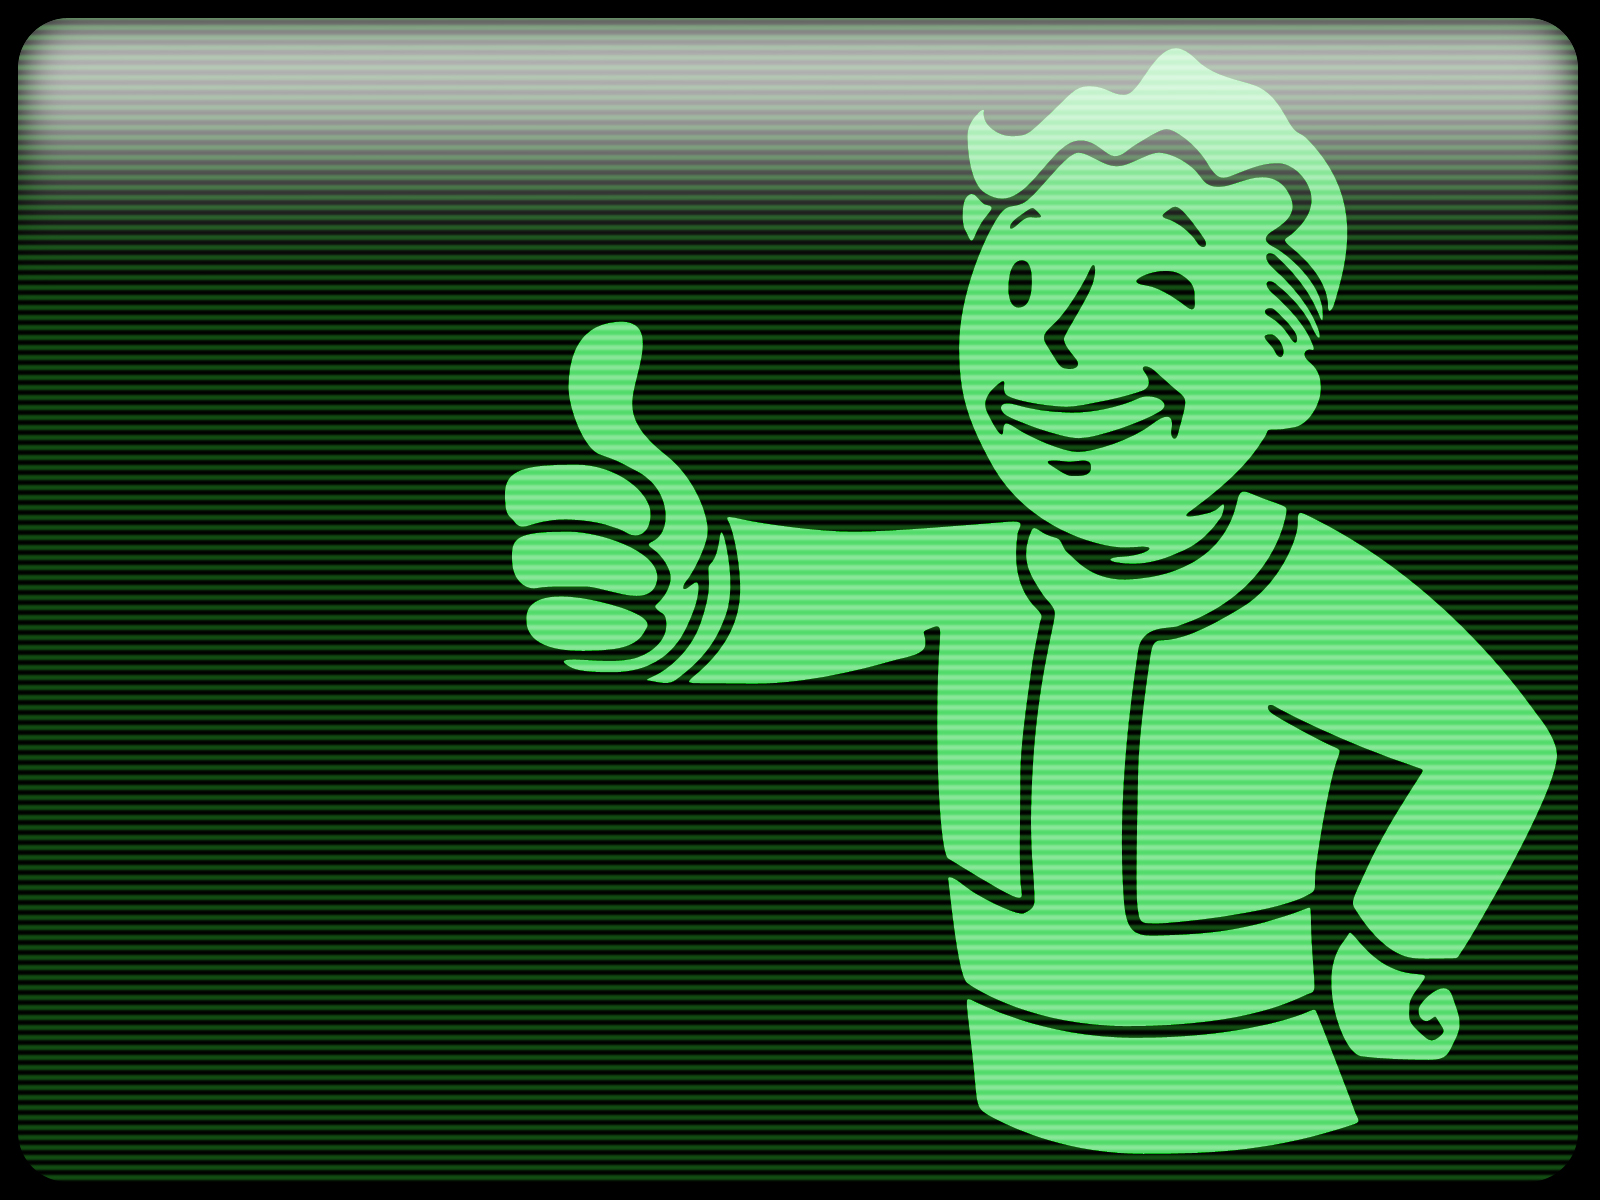 User Image Pip Boy Thumbs Up Monochrome